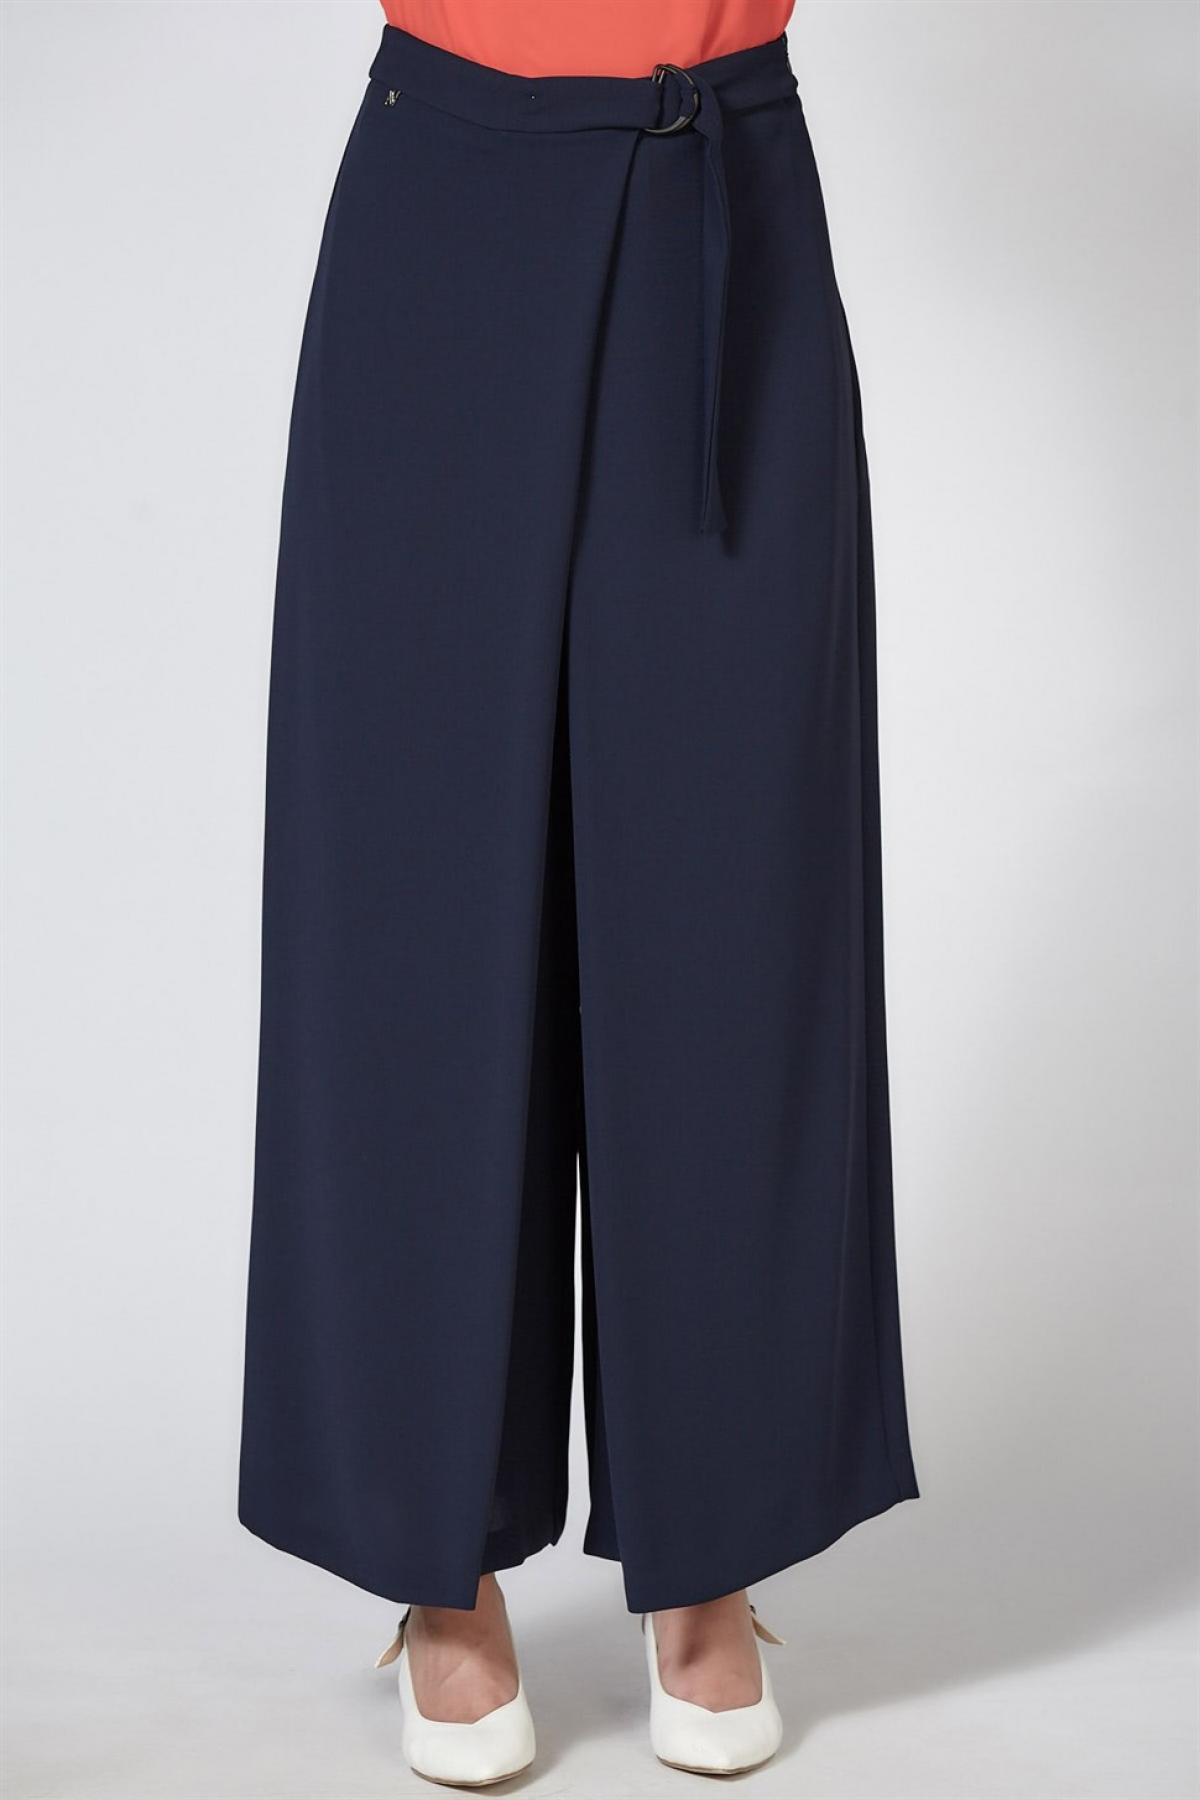 Armine Wide Leg Women's Pants - 9K2805 Blue